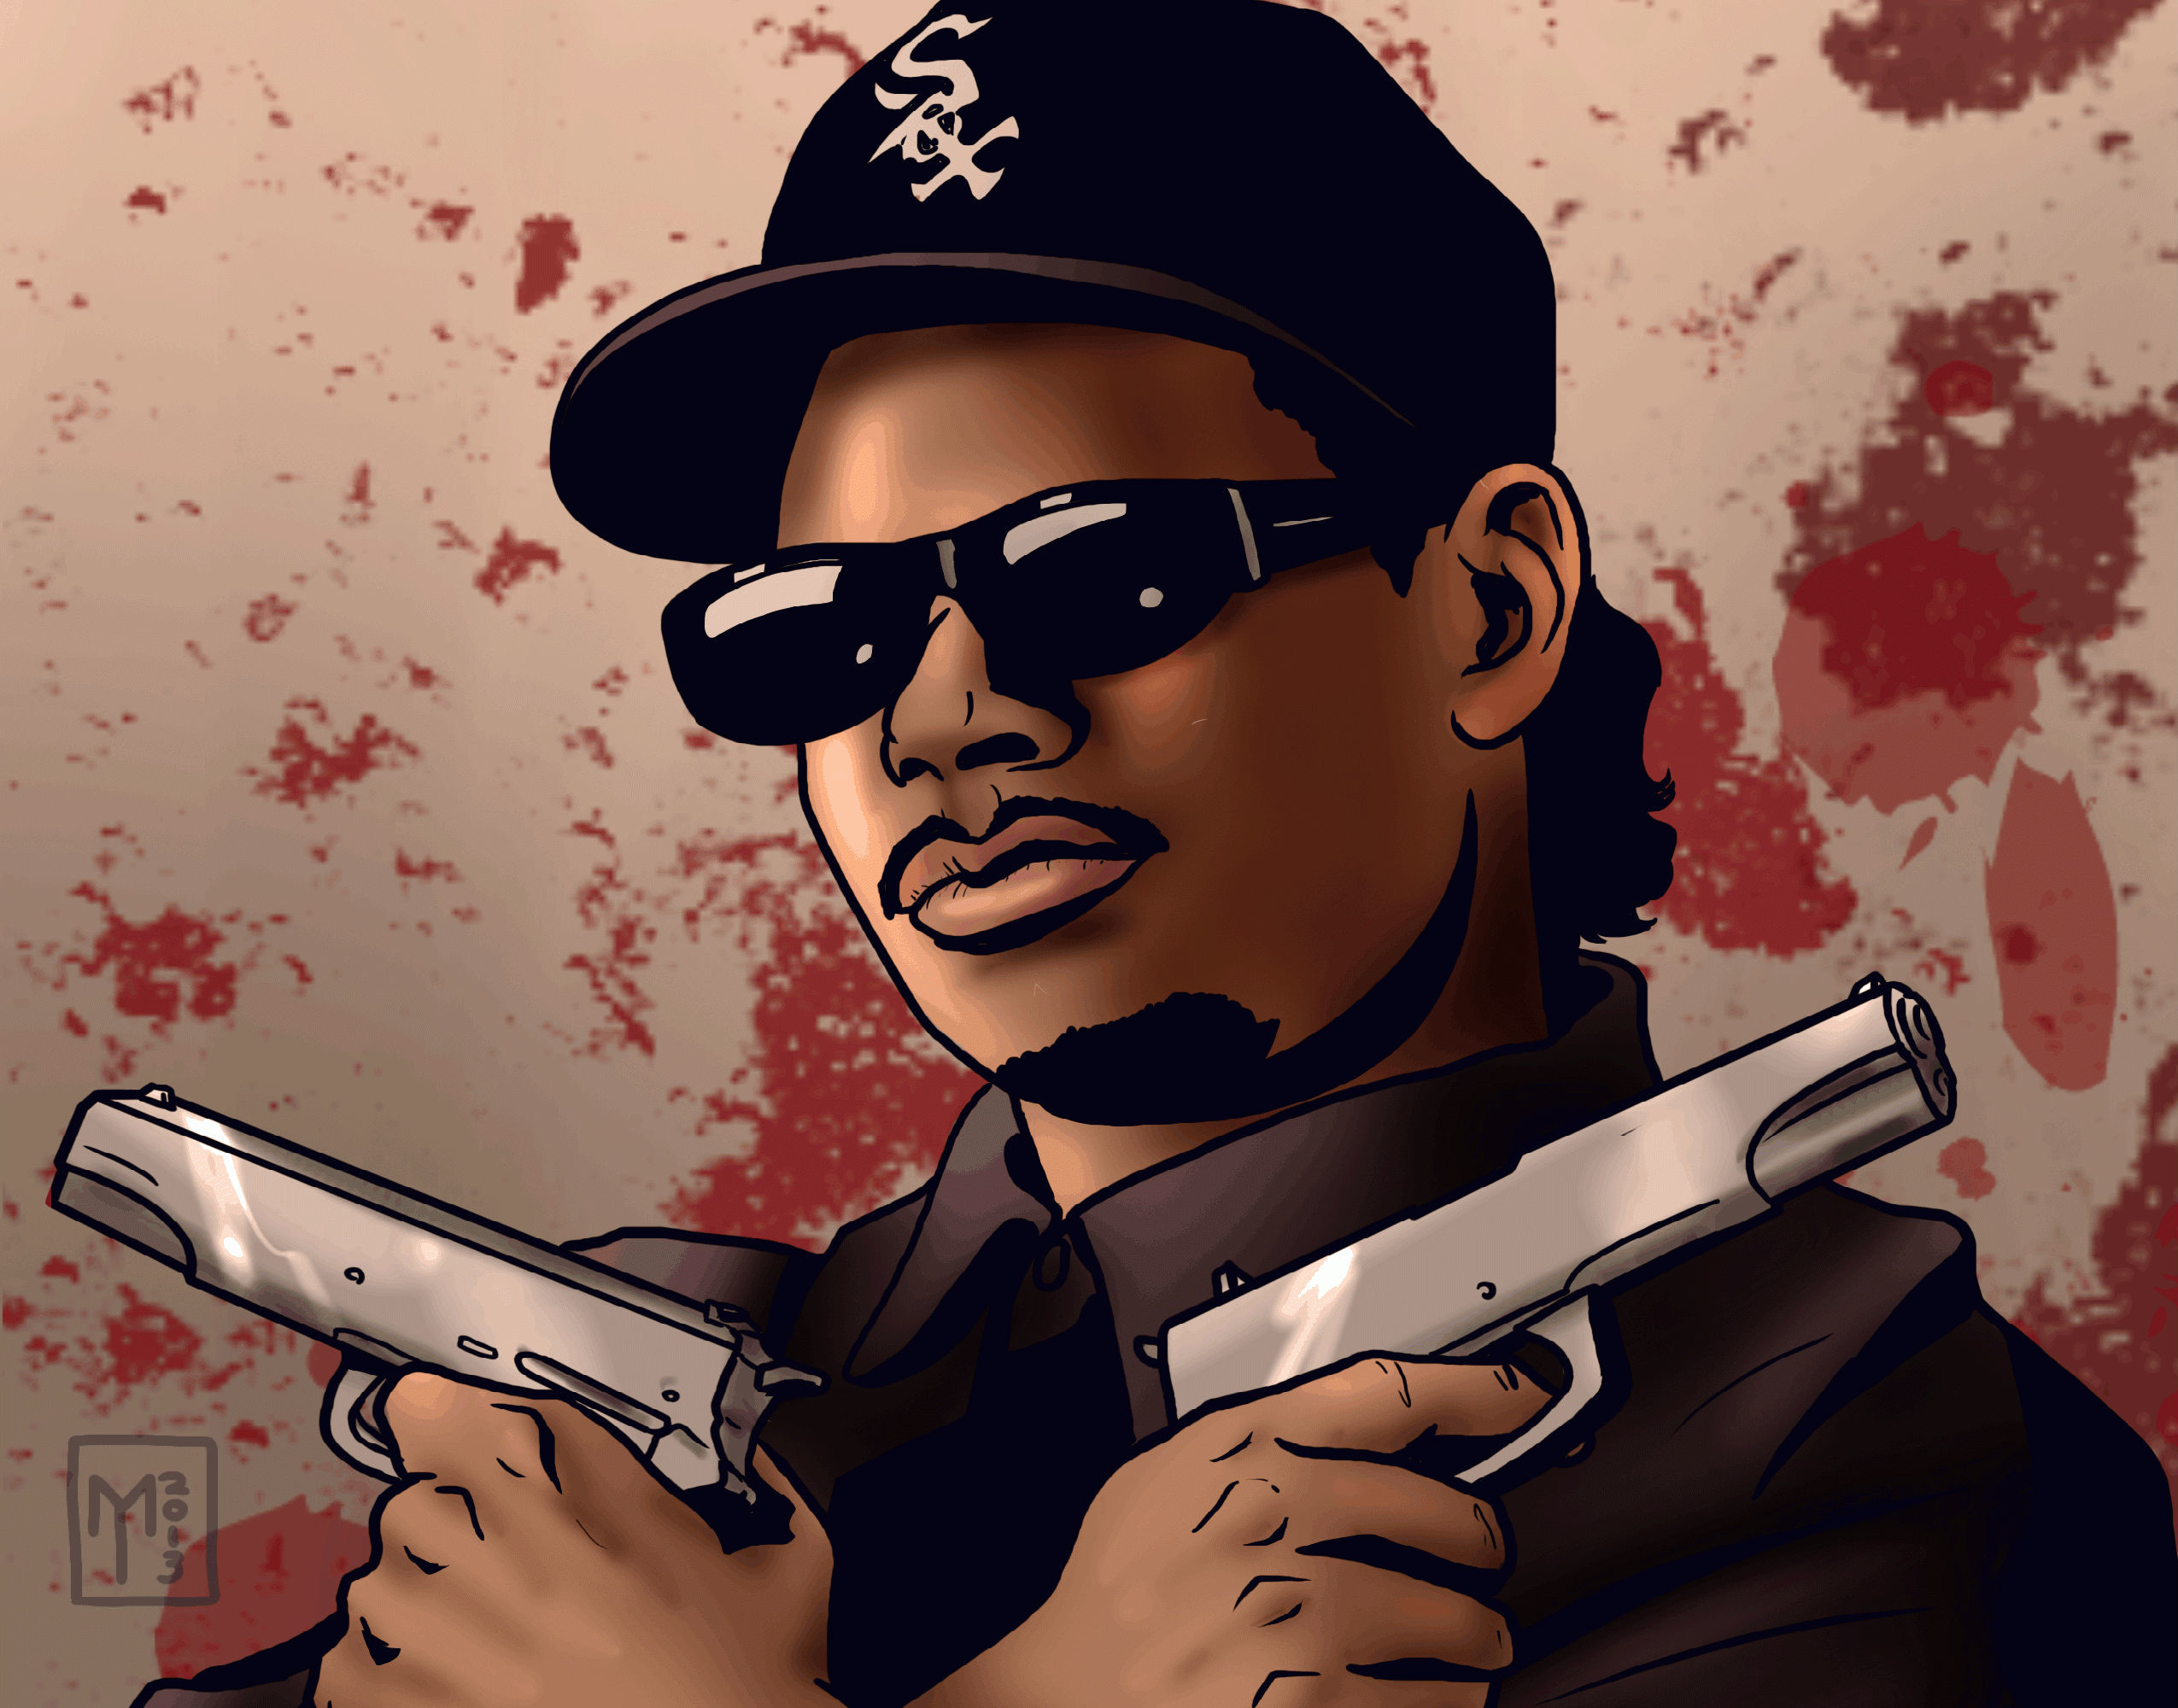 Res: 2550x2000, ... Widescreen Eazy E Wallpaper | G.sFDcY Wallpapers High Resolution ...